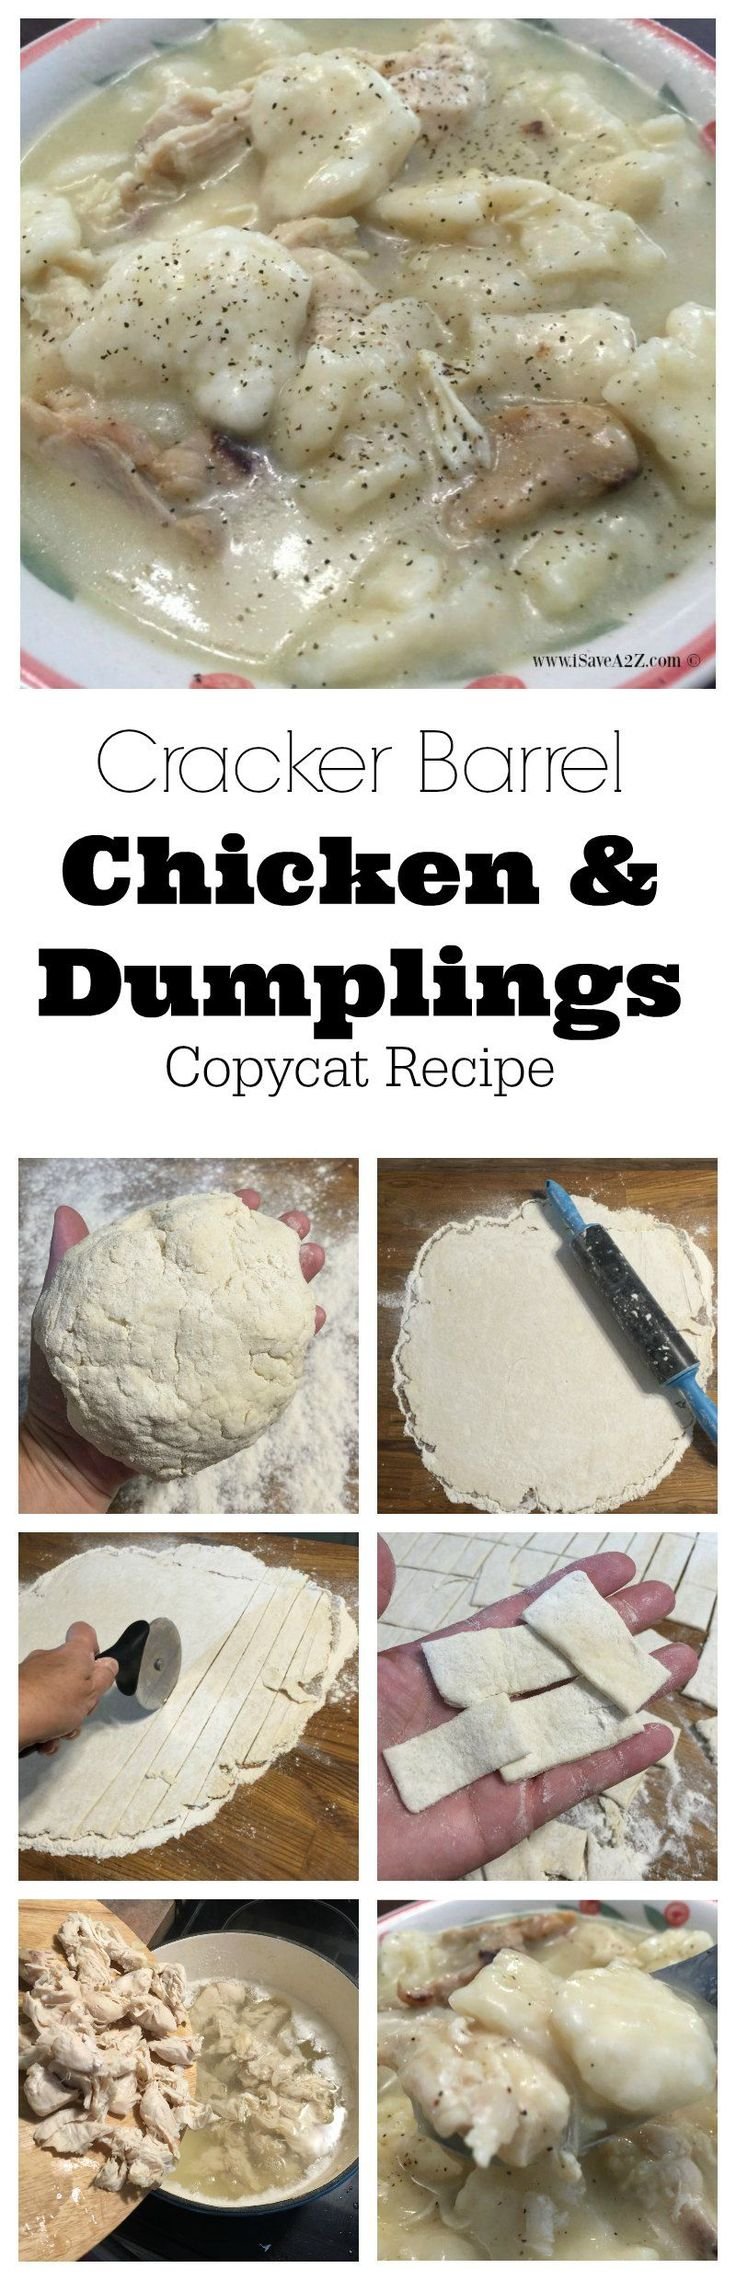 Cracker Barrel Chicken and Dumplings Copycat Recipe - iSaveA2Z.com